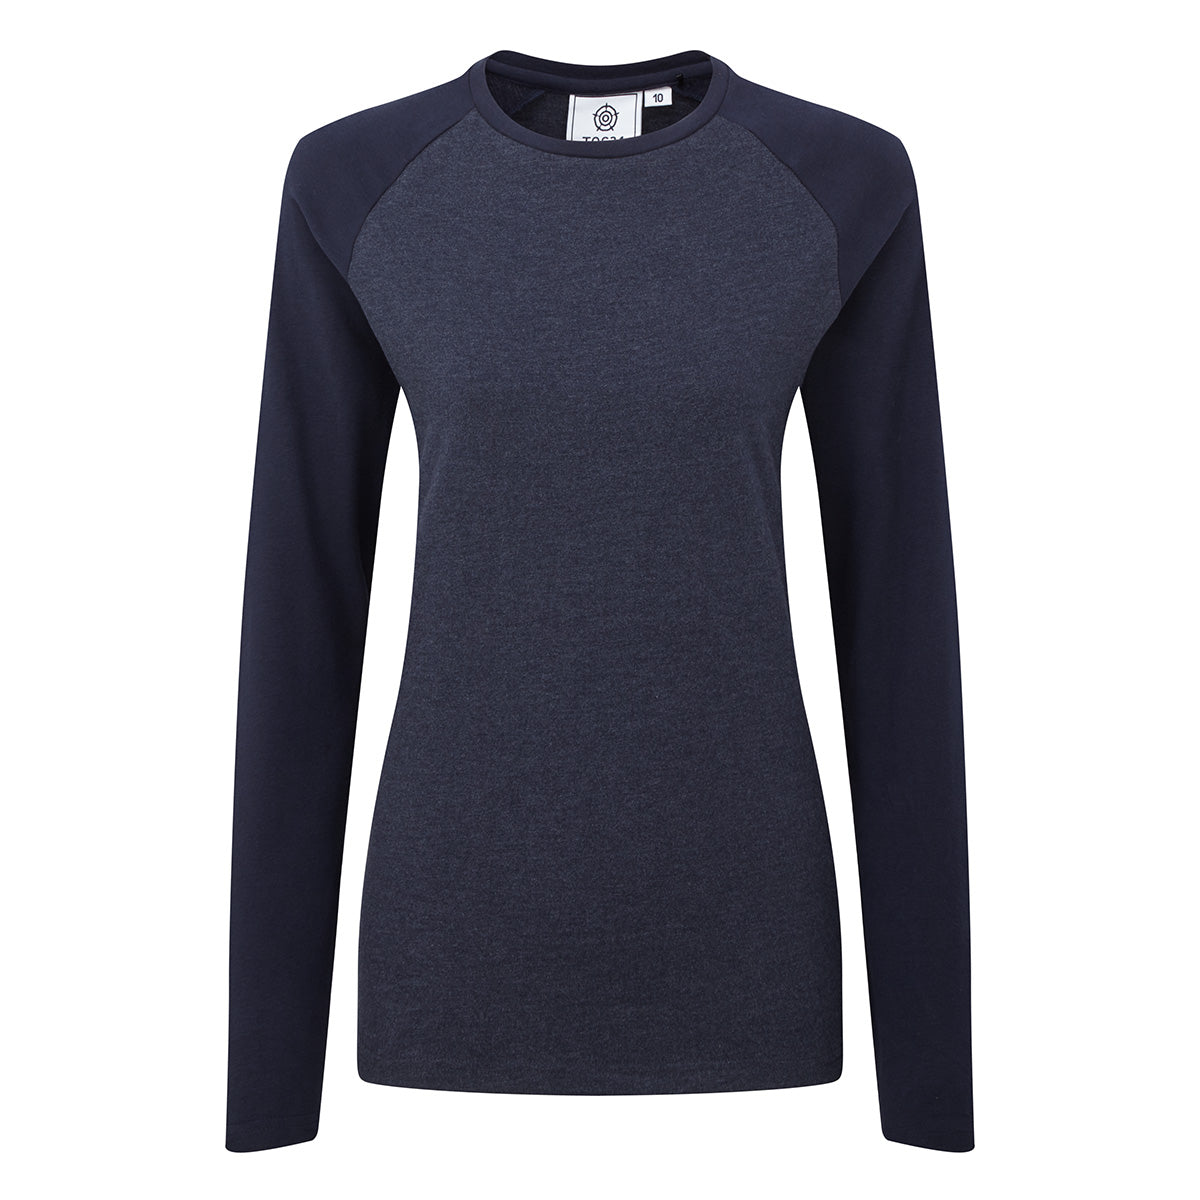 Kilwick Womens Long Sleeve Raglan T-Shirt - Navy/Blue image 4